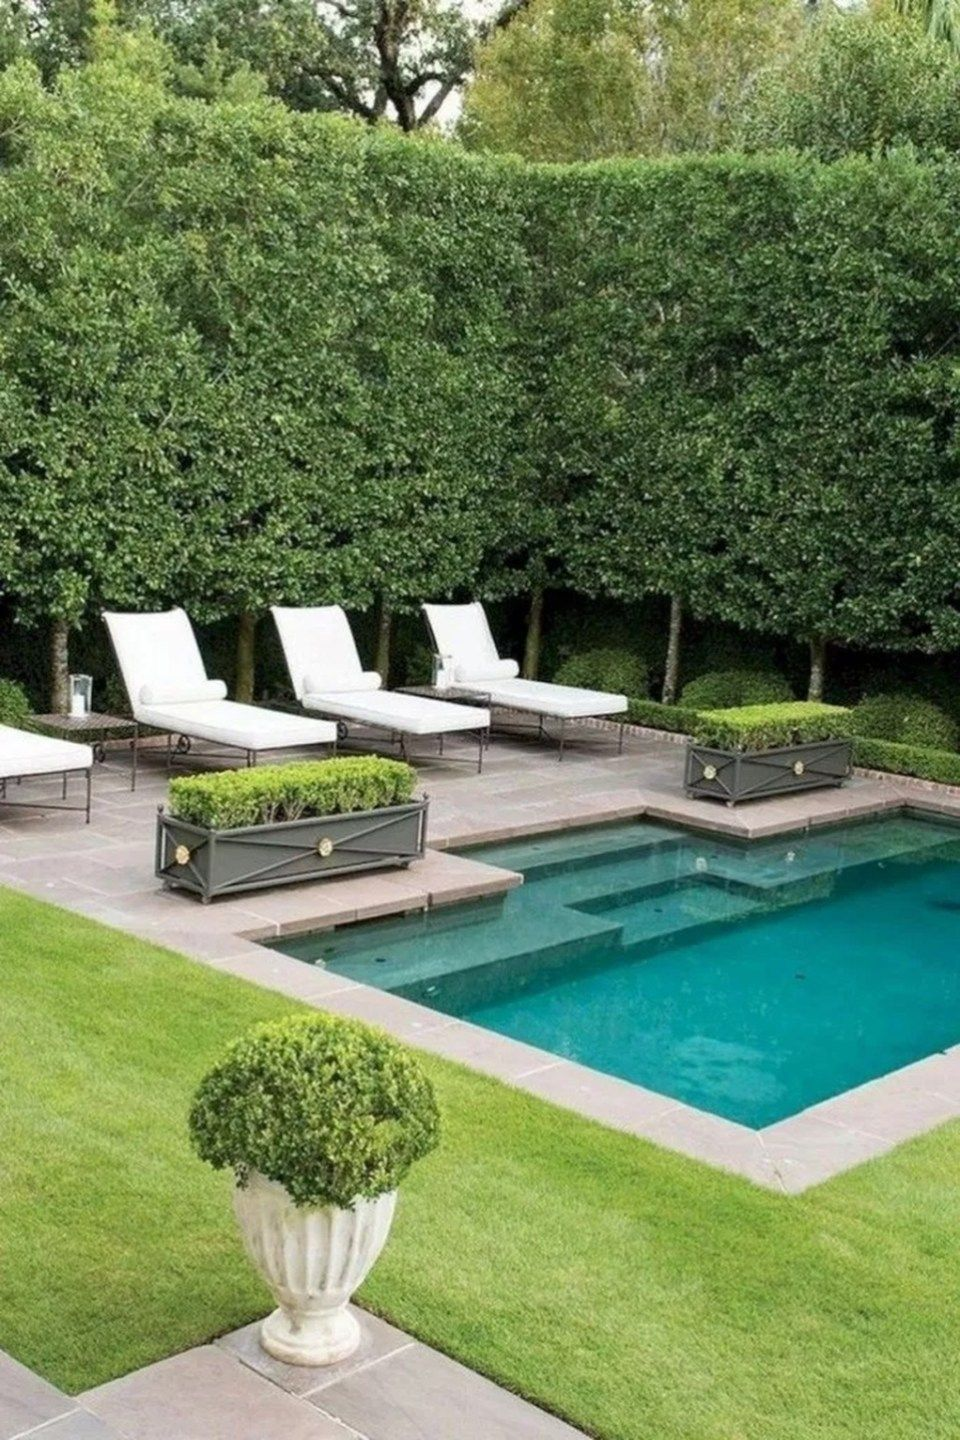 20 Modern Swimming Pool Design Ideas For Your Beautiful Home Small Backyard Design Small Pool Design Backyard Pool Designs